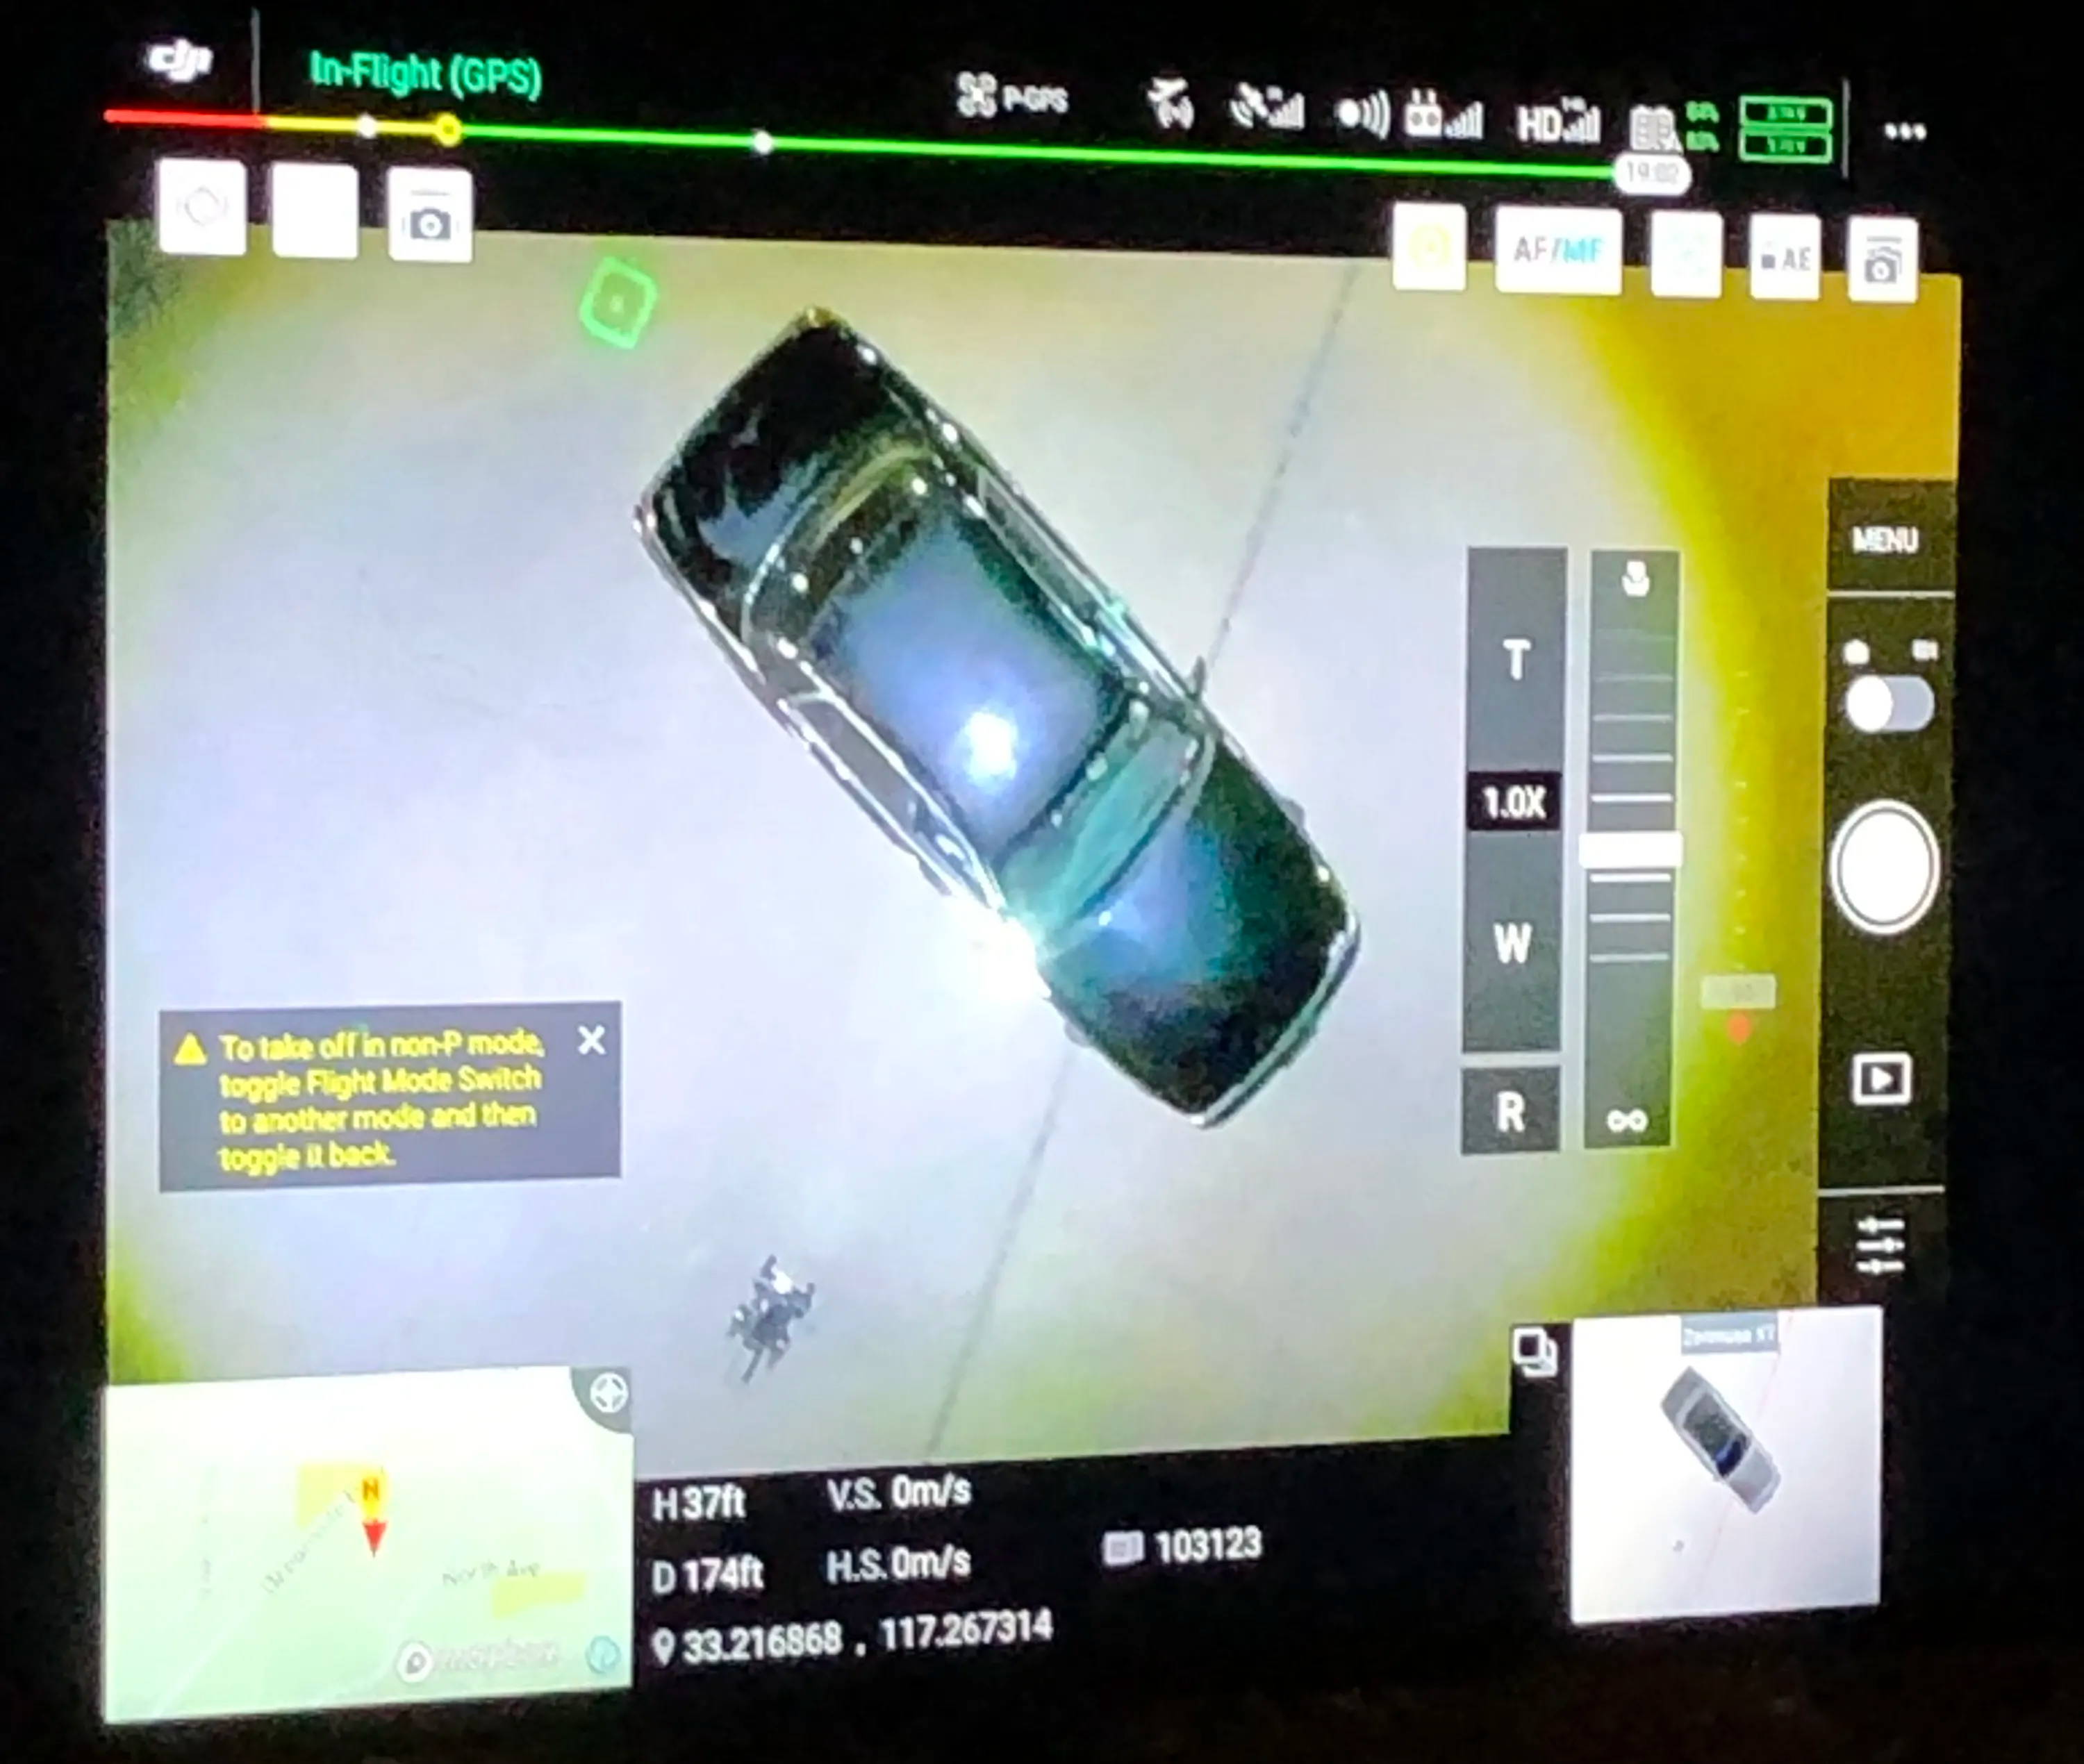 An aerial view from the control center of the drone over top of the vehicle.